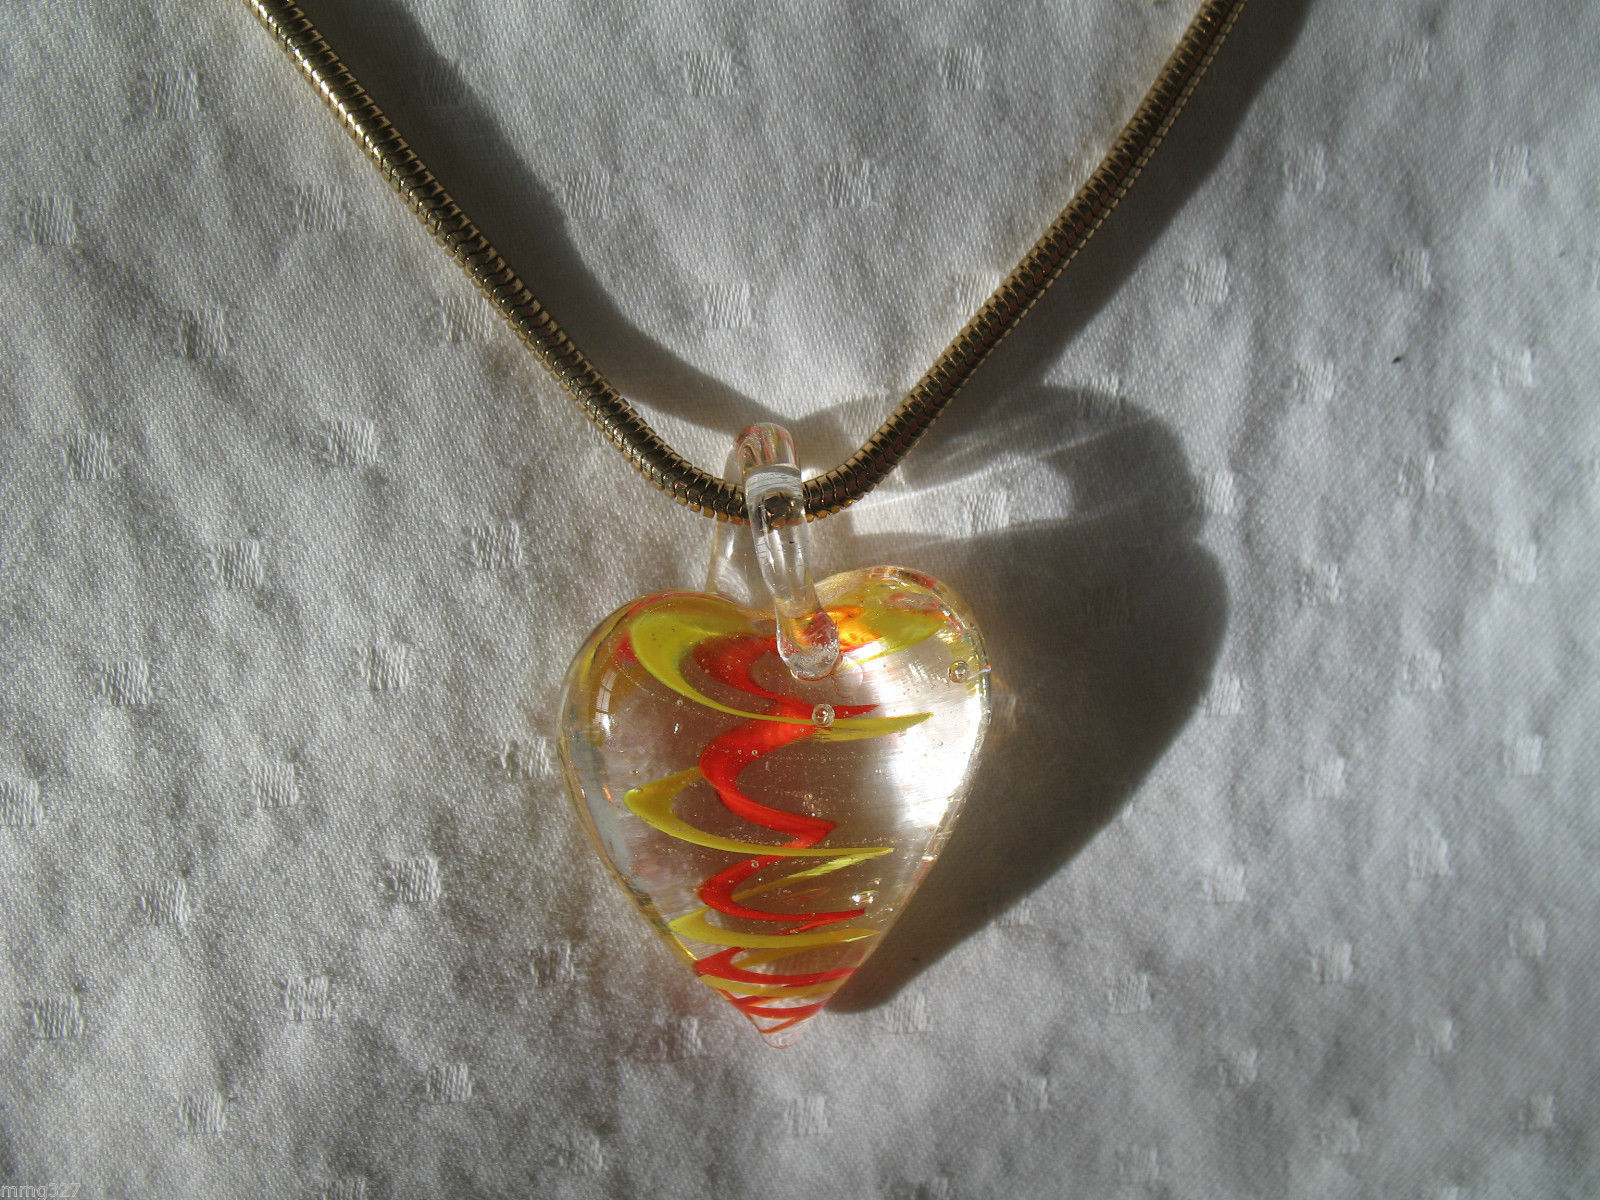 Murano Glass Heart Pendant Necklace Charter Club Gold Snake Chain 22 inch New